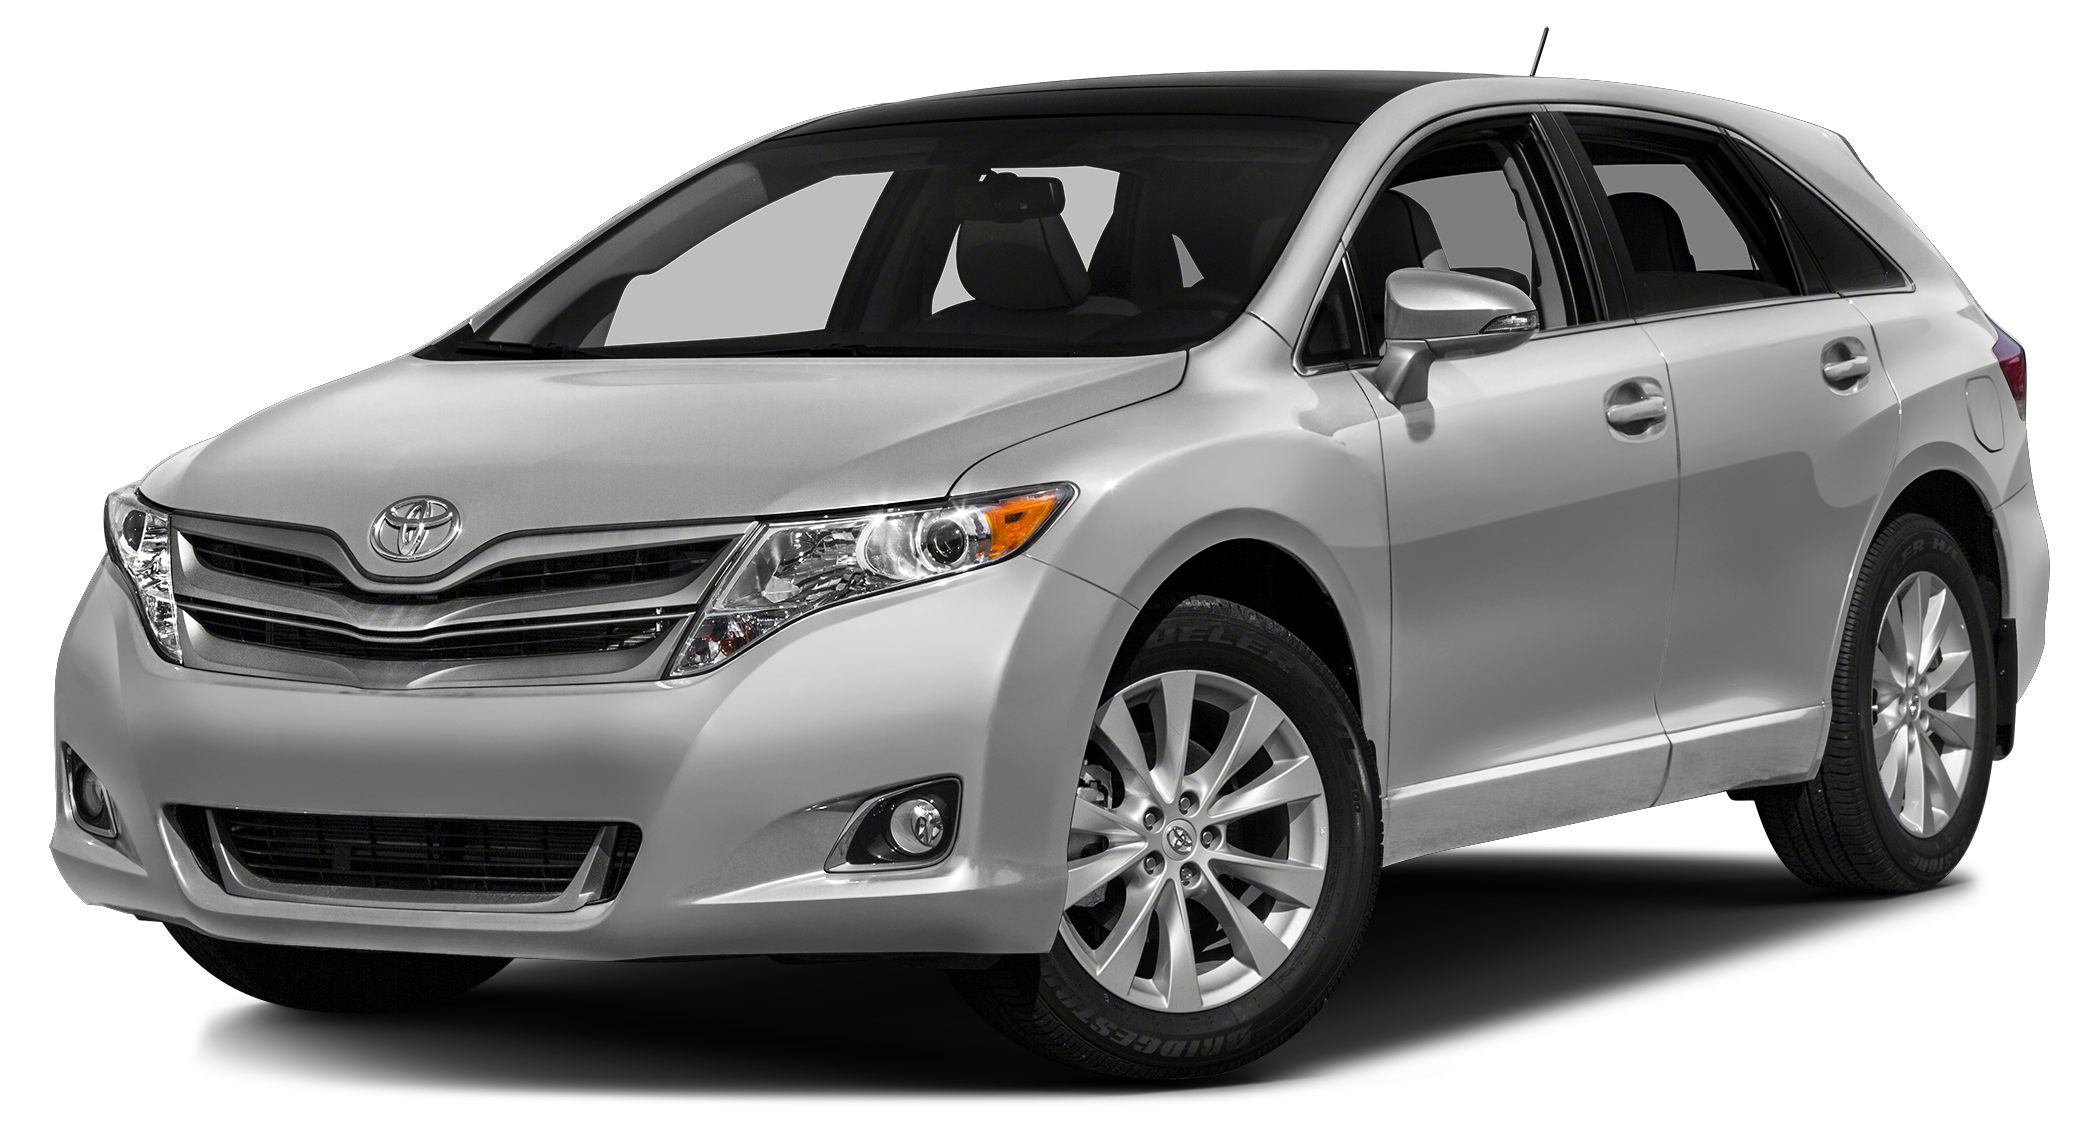 2013 Toyota Venza XLE CARFAX 1-Owner ONLY 34459 Miles XLE trim EPA 25 MPG Hwy18 MPG City Nav